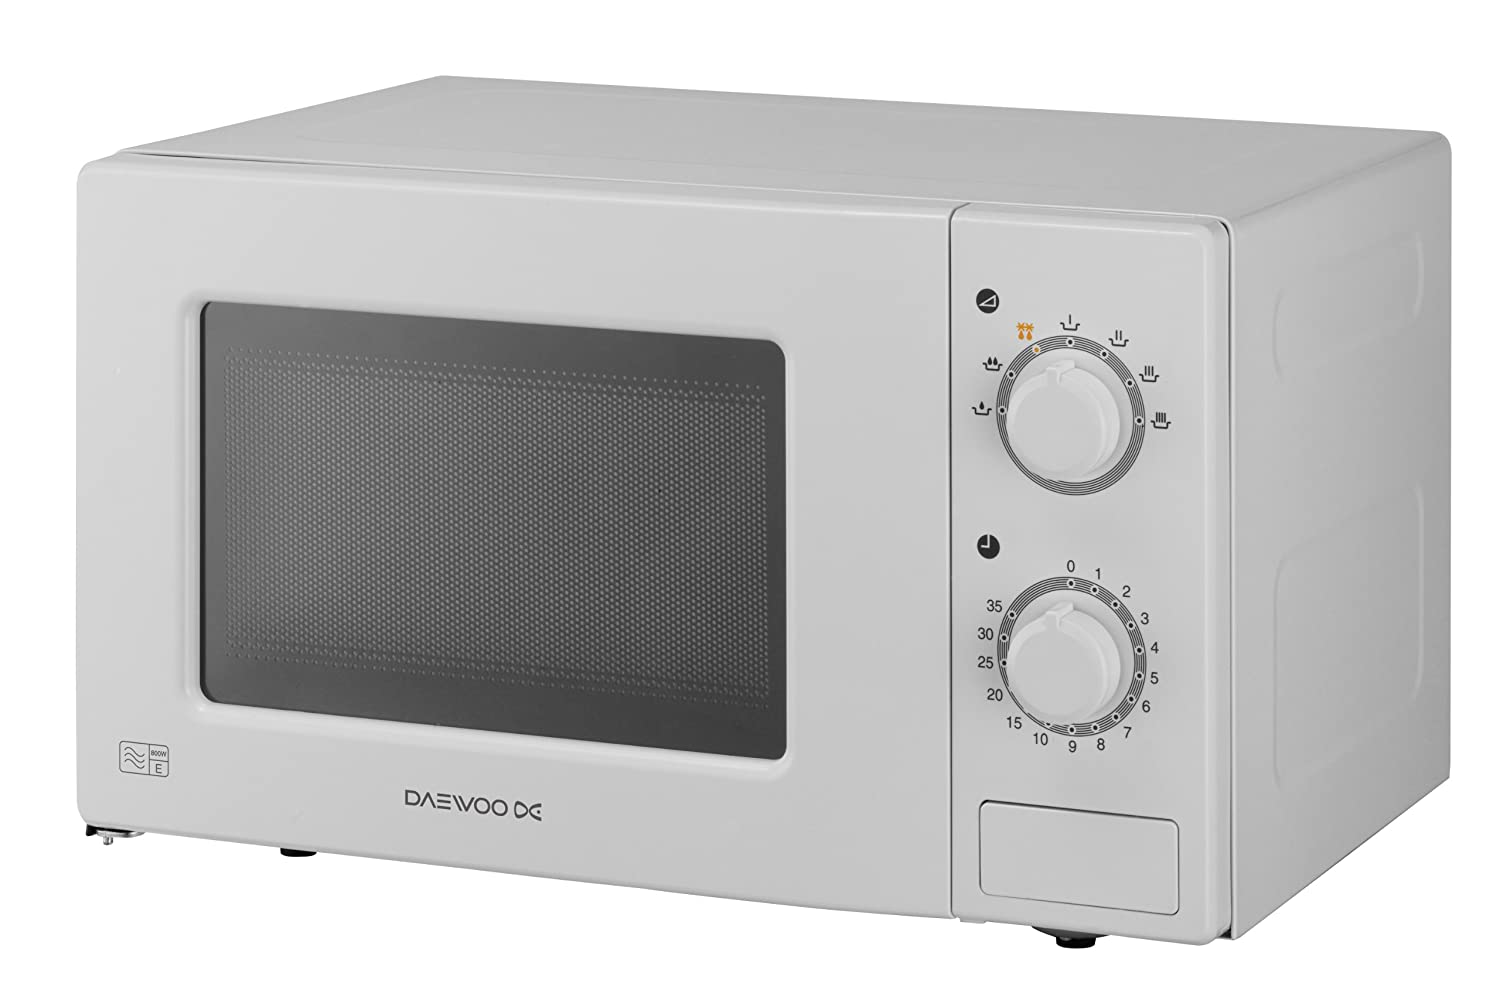 Daewoo Kor6l77 Microwave Oven White Amazon Kitchen Home